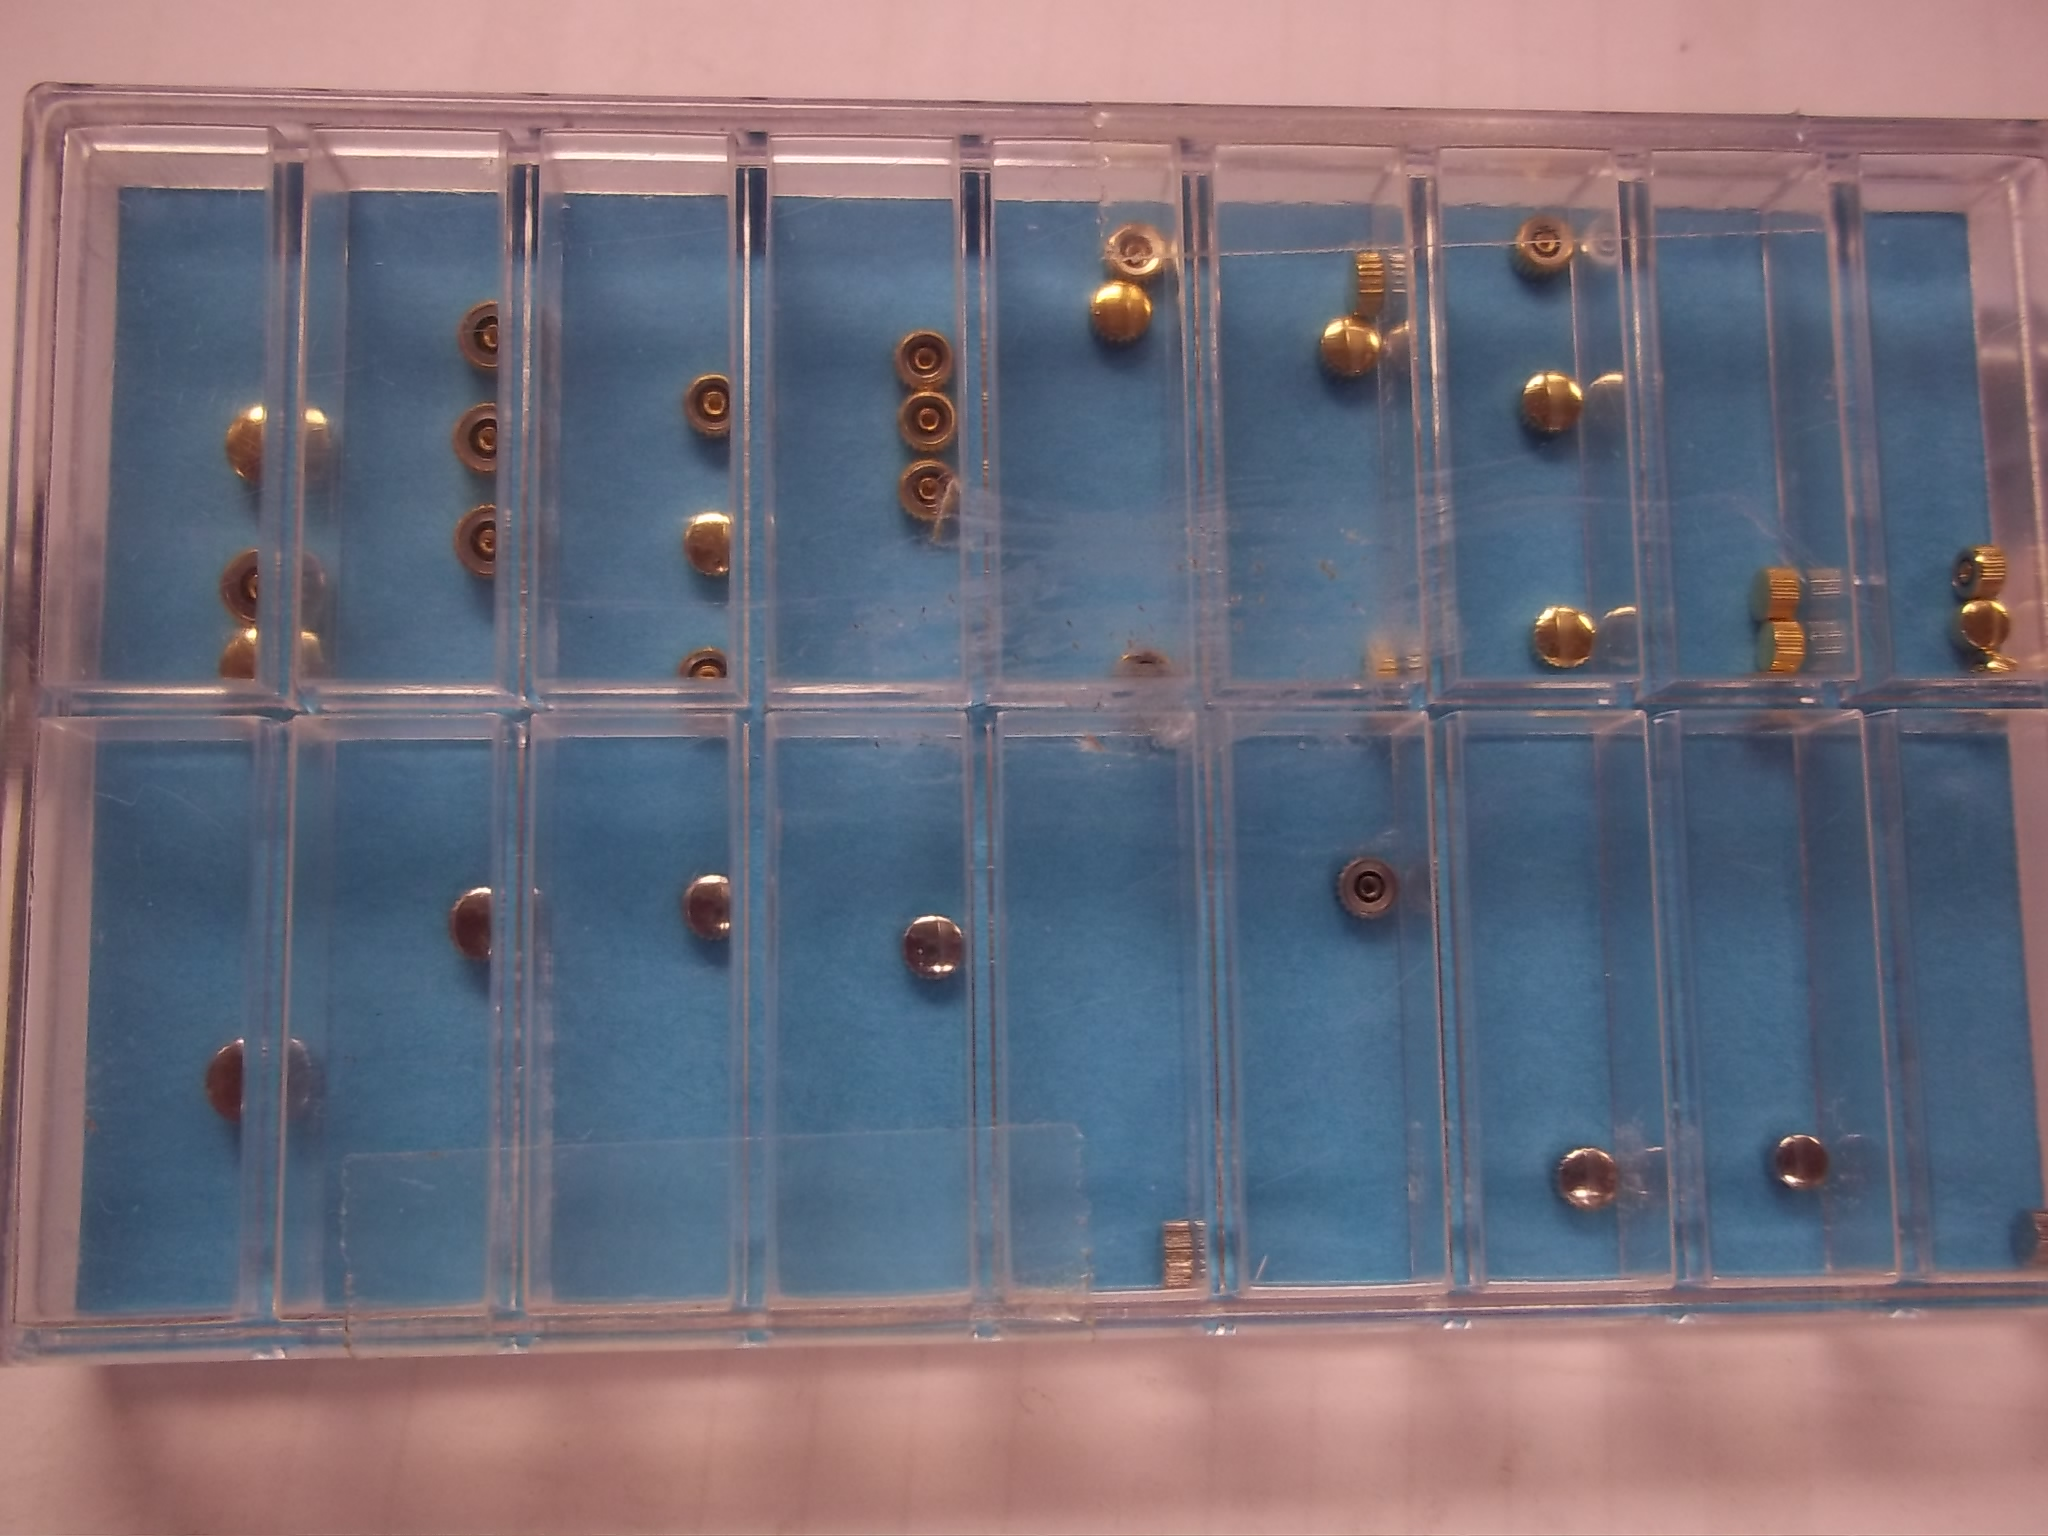 5610 A*F Assortment of Japanese Style Watch Crowns--36 pieces Yellow & Stainless Steel